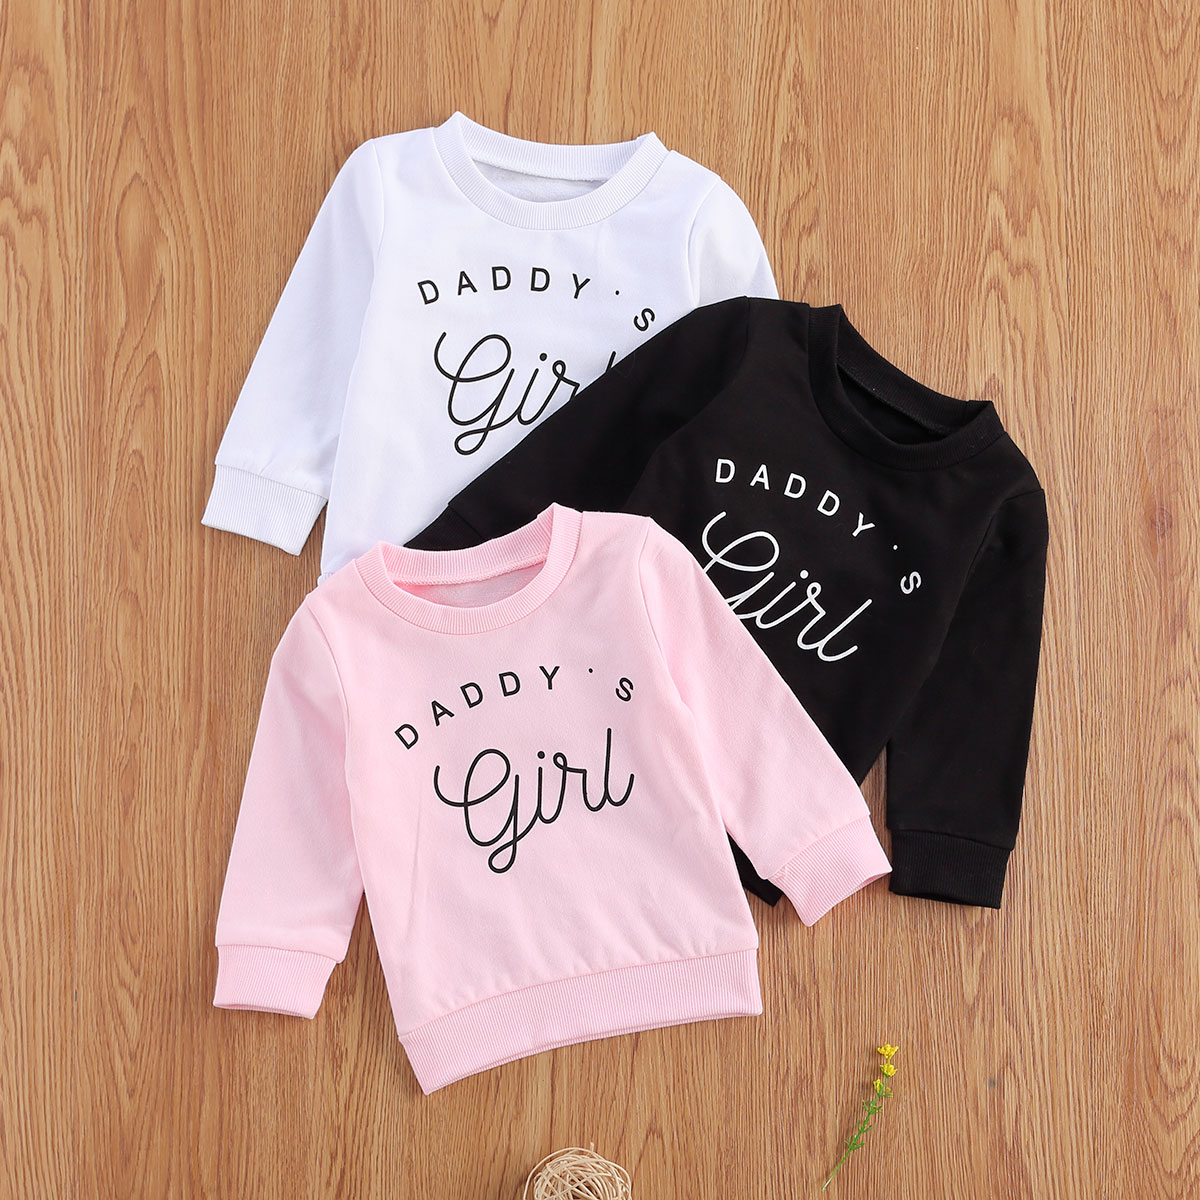 Newborn Baby Girls Sweatshirts Infant Long Sleeve O neck Thick Tee Casual Letter Print Tops 2020 New Spring Autumn Sweater